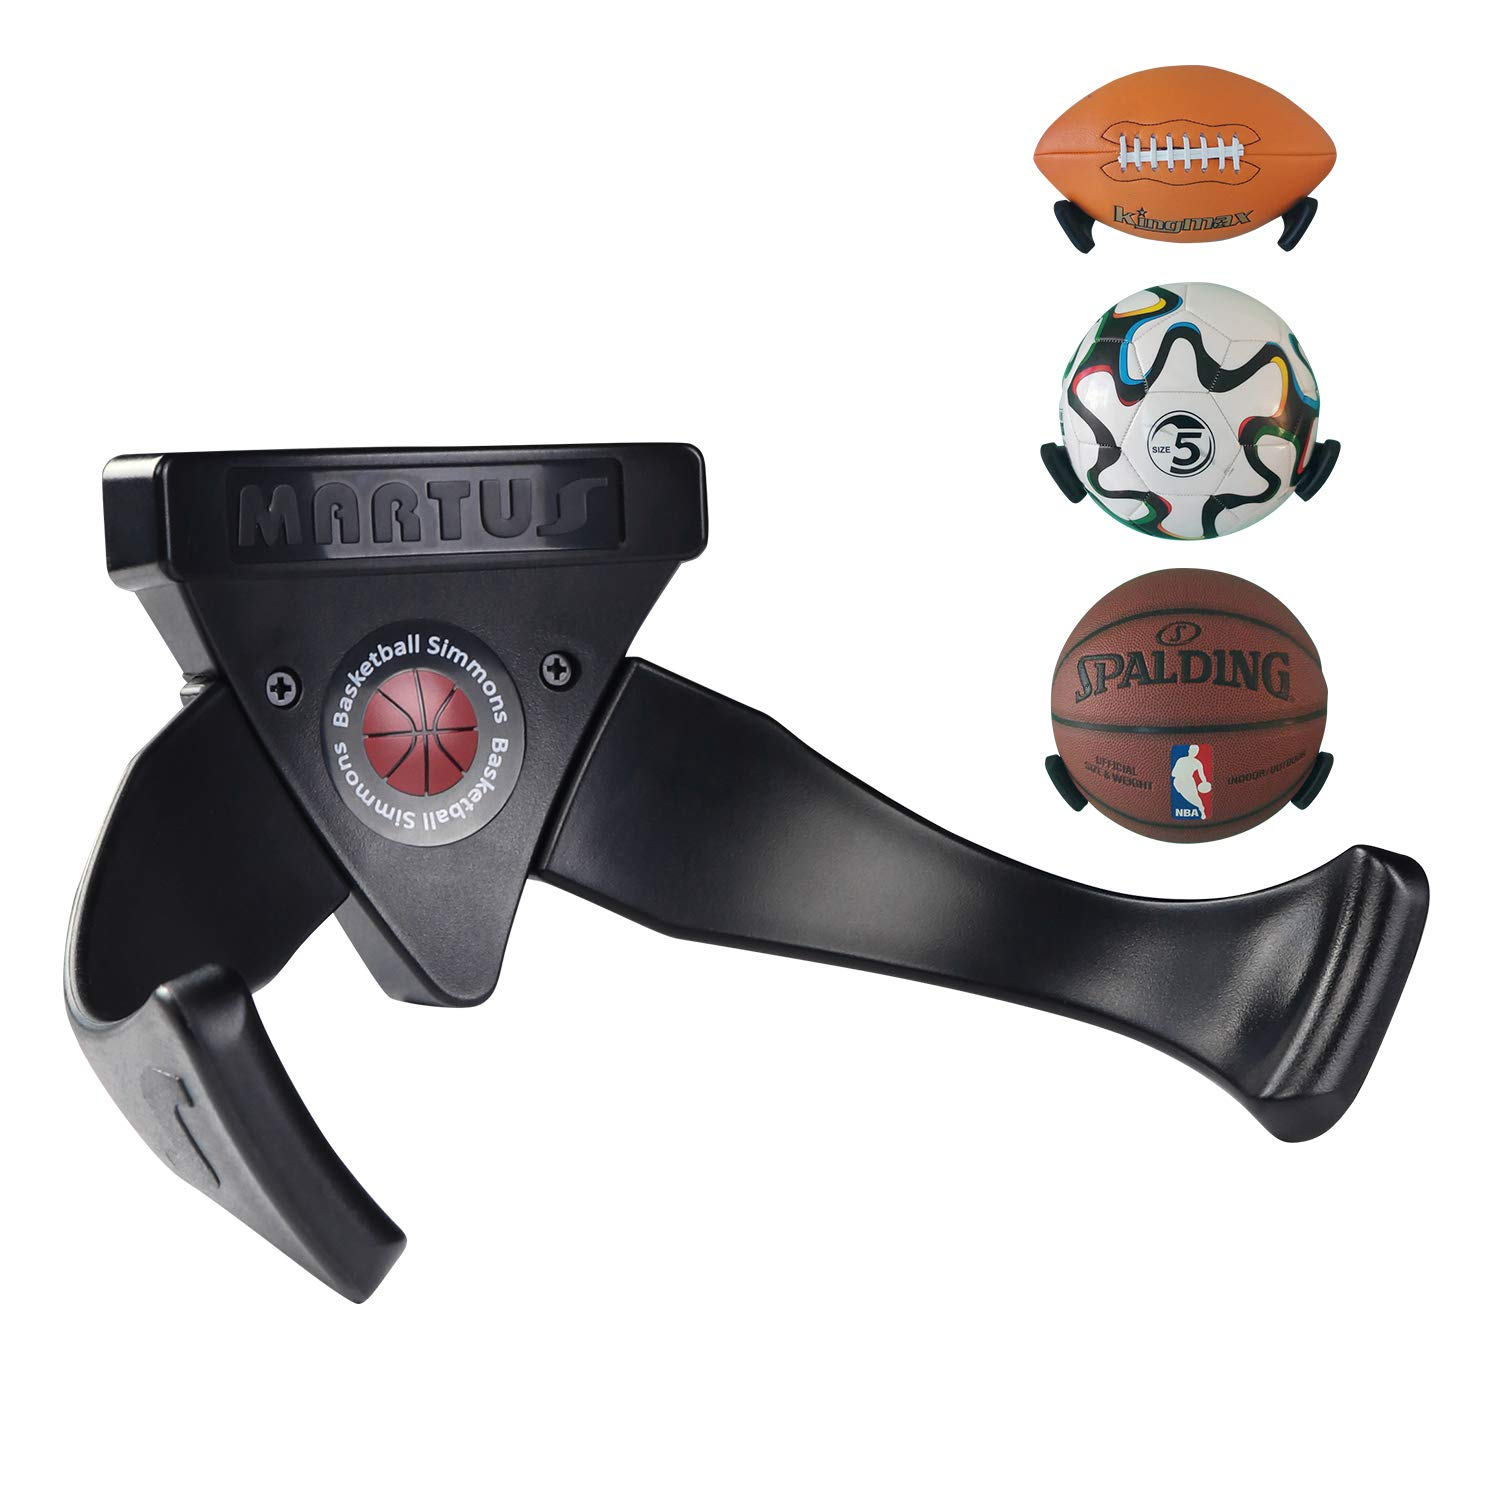 Evibooin Wall Mounted Space Saver Display Basketball Football Soccer Volleyball Sports' Ball Holder Claw Black